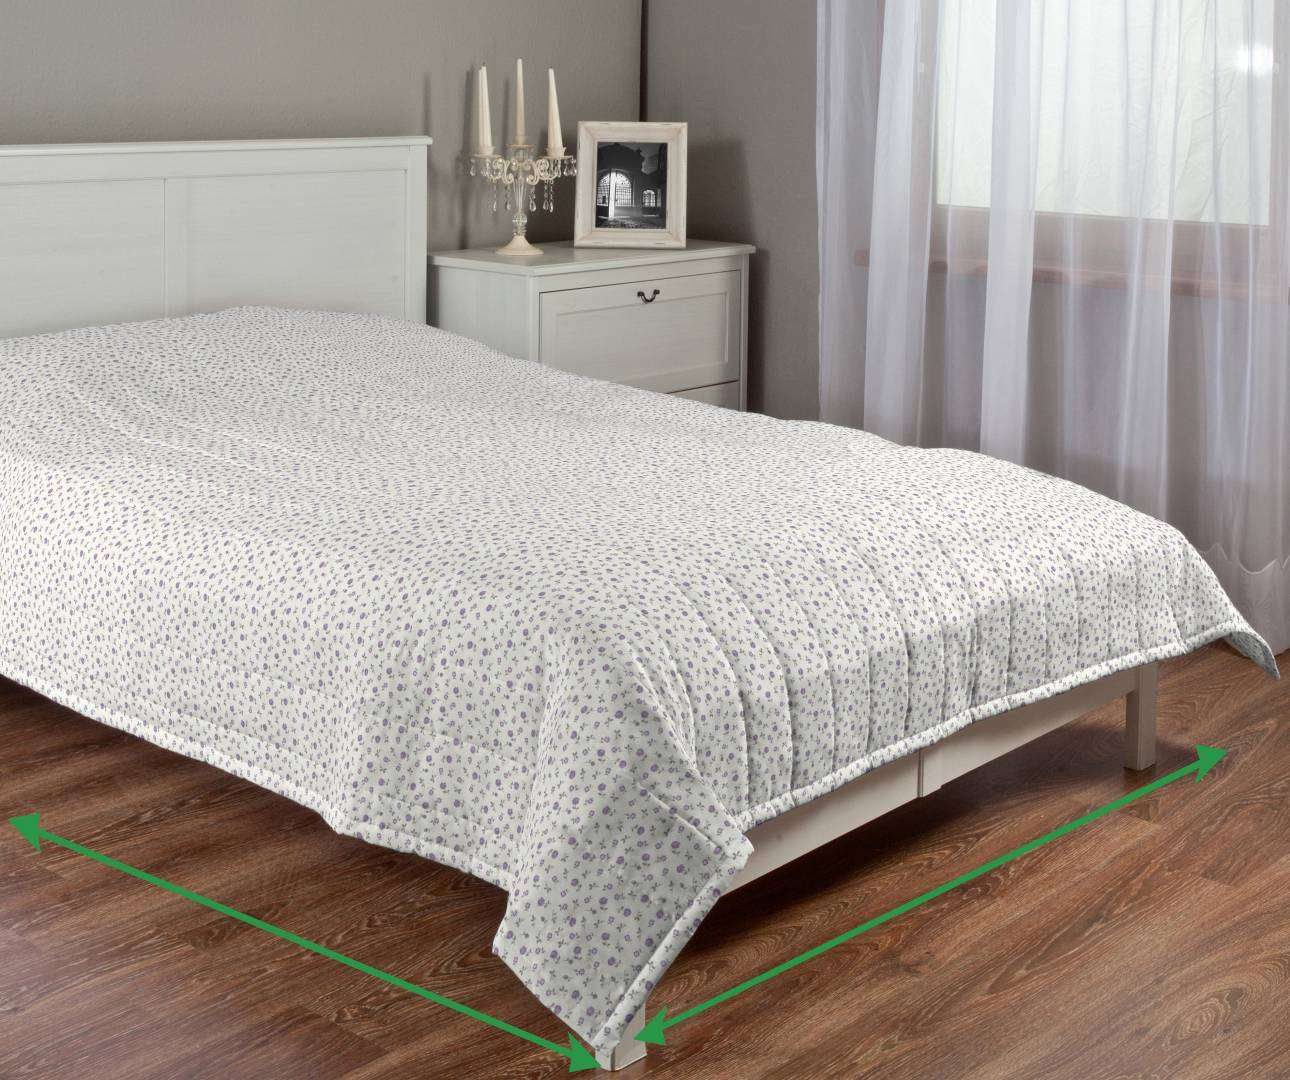 Quilted throw (vertical quilt pattern) in collection SALE, fabric: 136-75